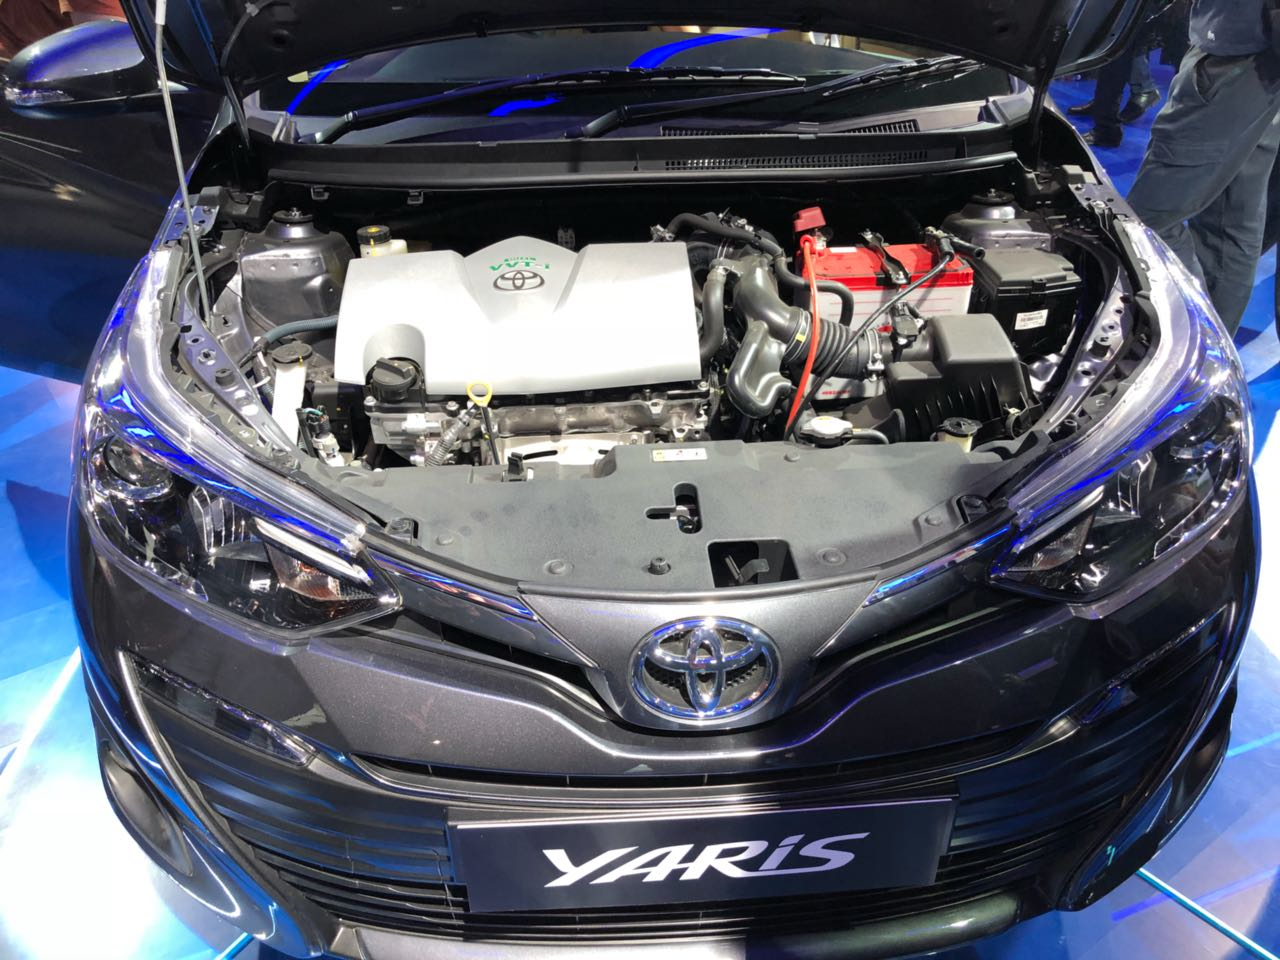 Toyota Yaris Debuts in India at Auto Expo 2018, To Rival Honda City